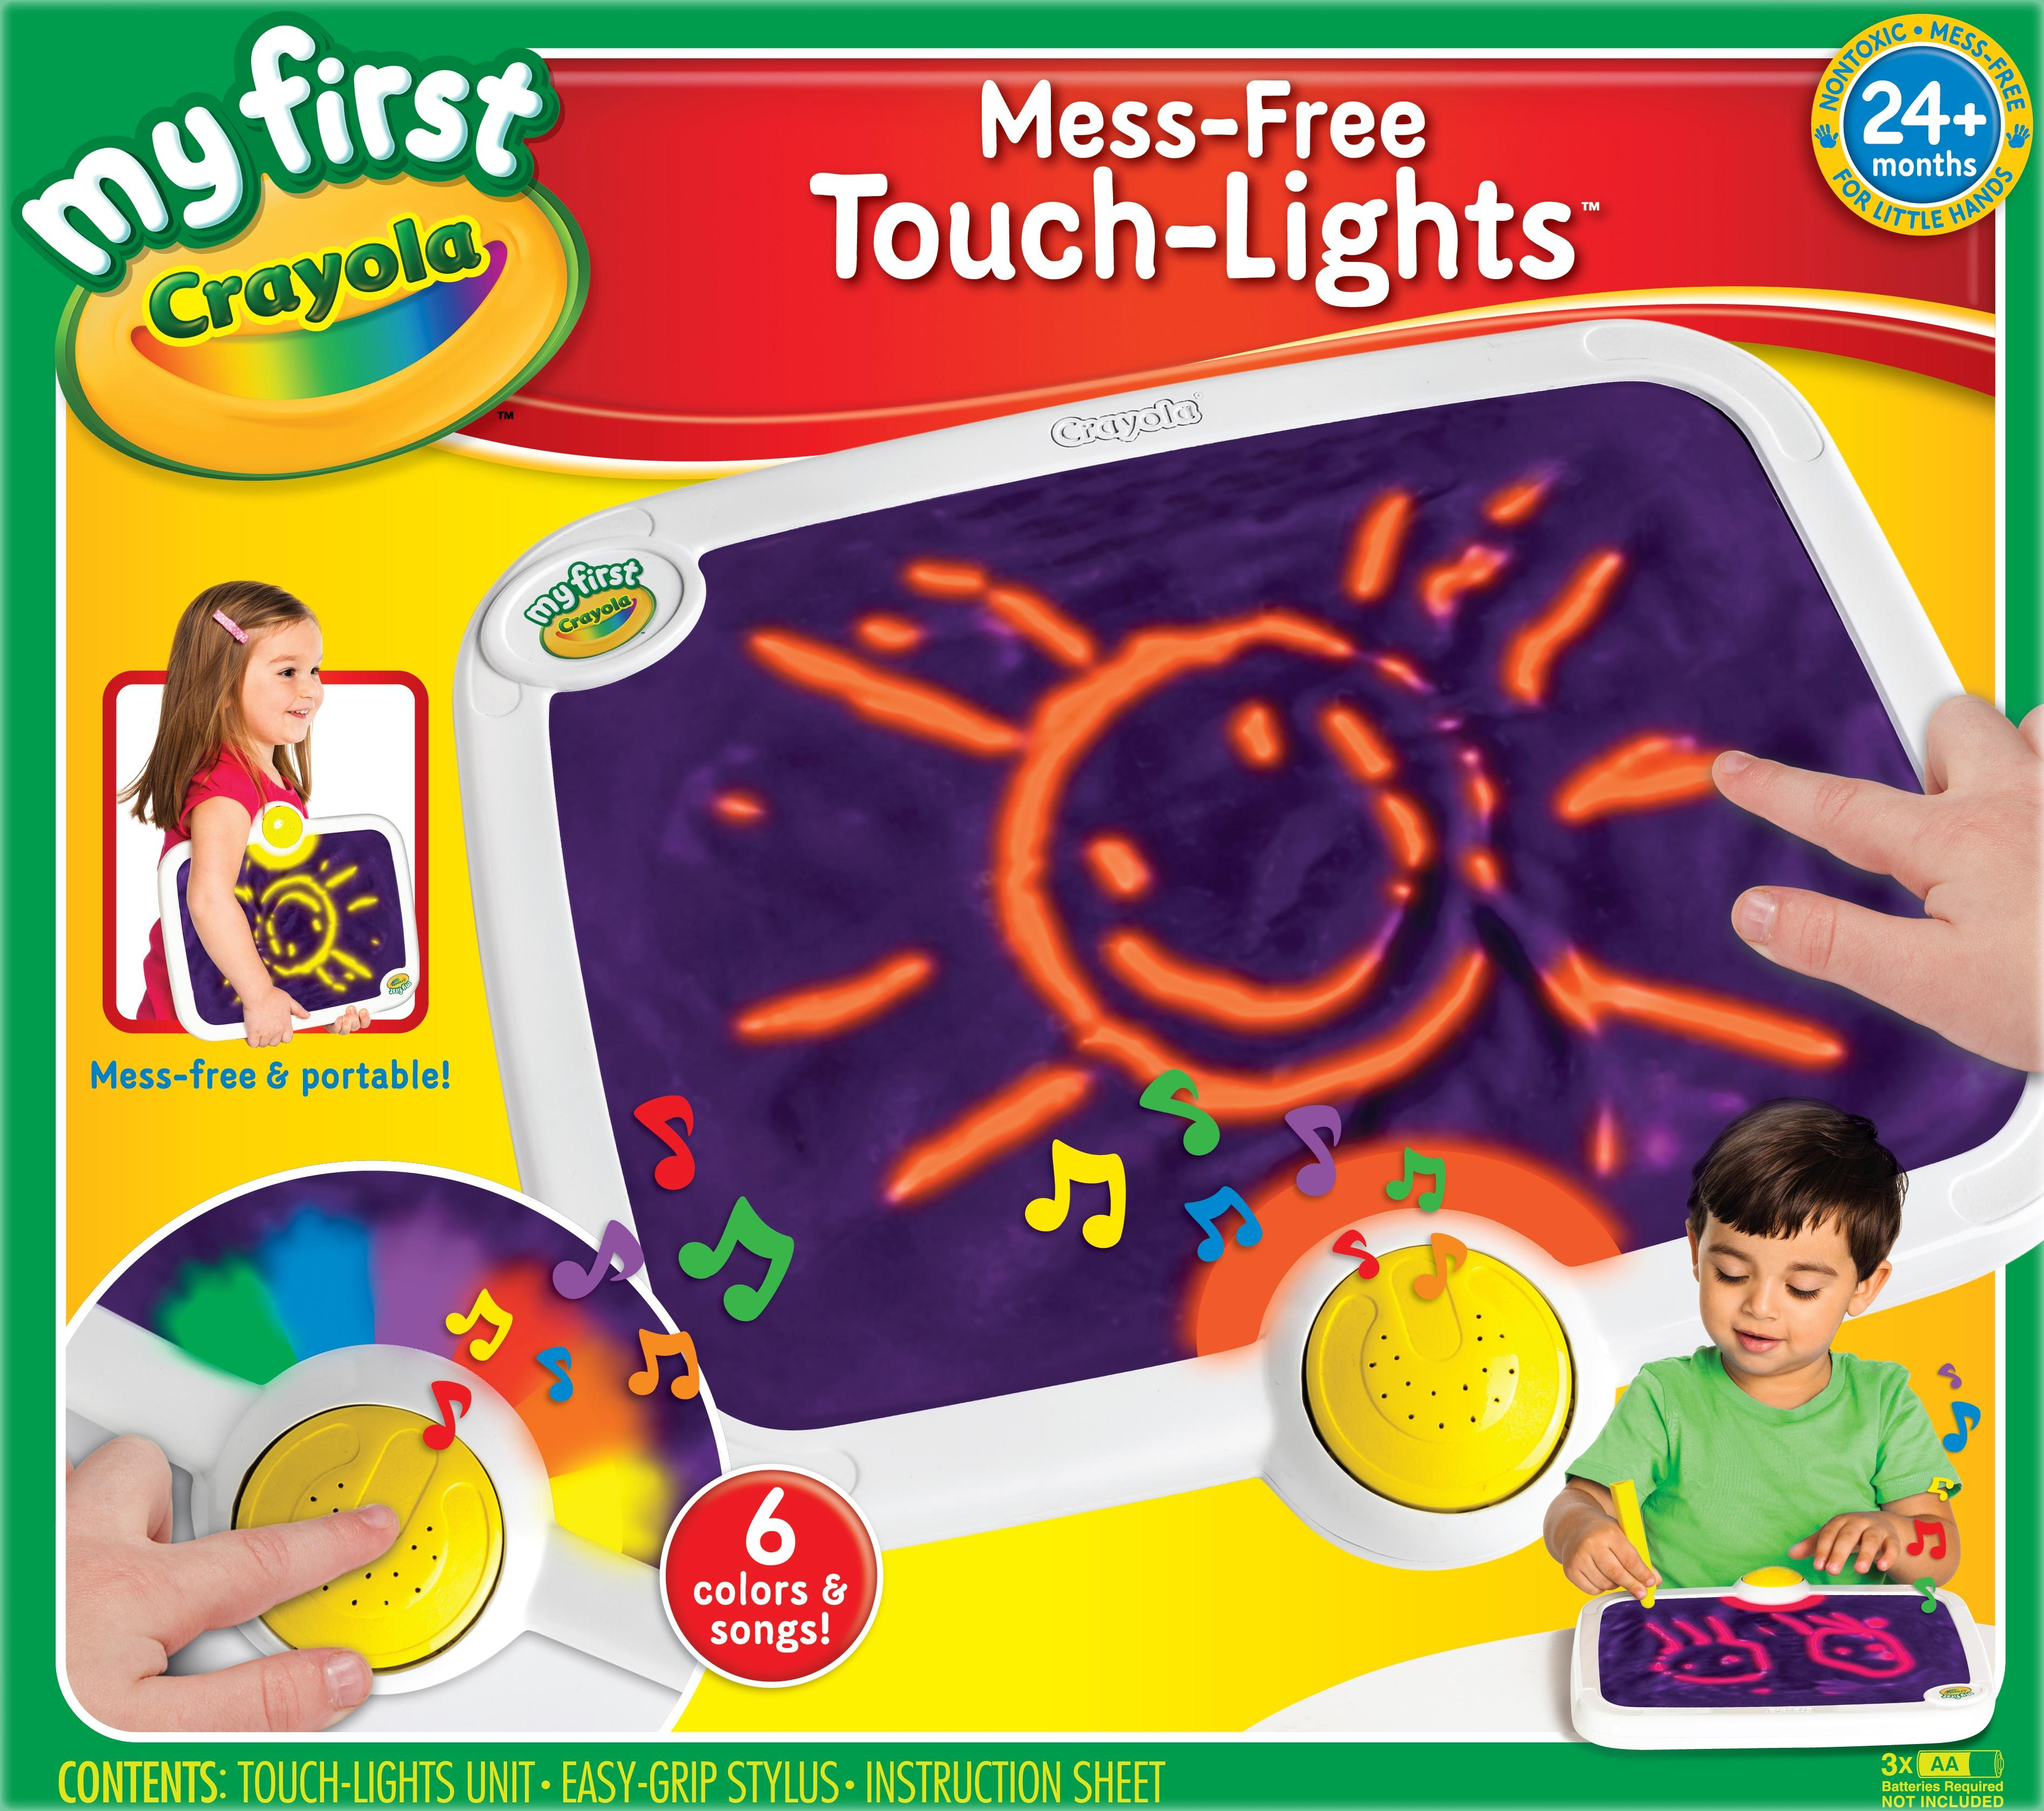 Amazon.com: Crayola My First Touch Lights: Toys & Games